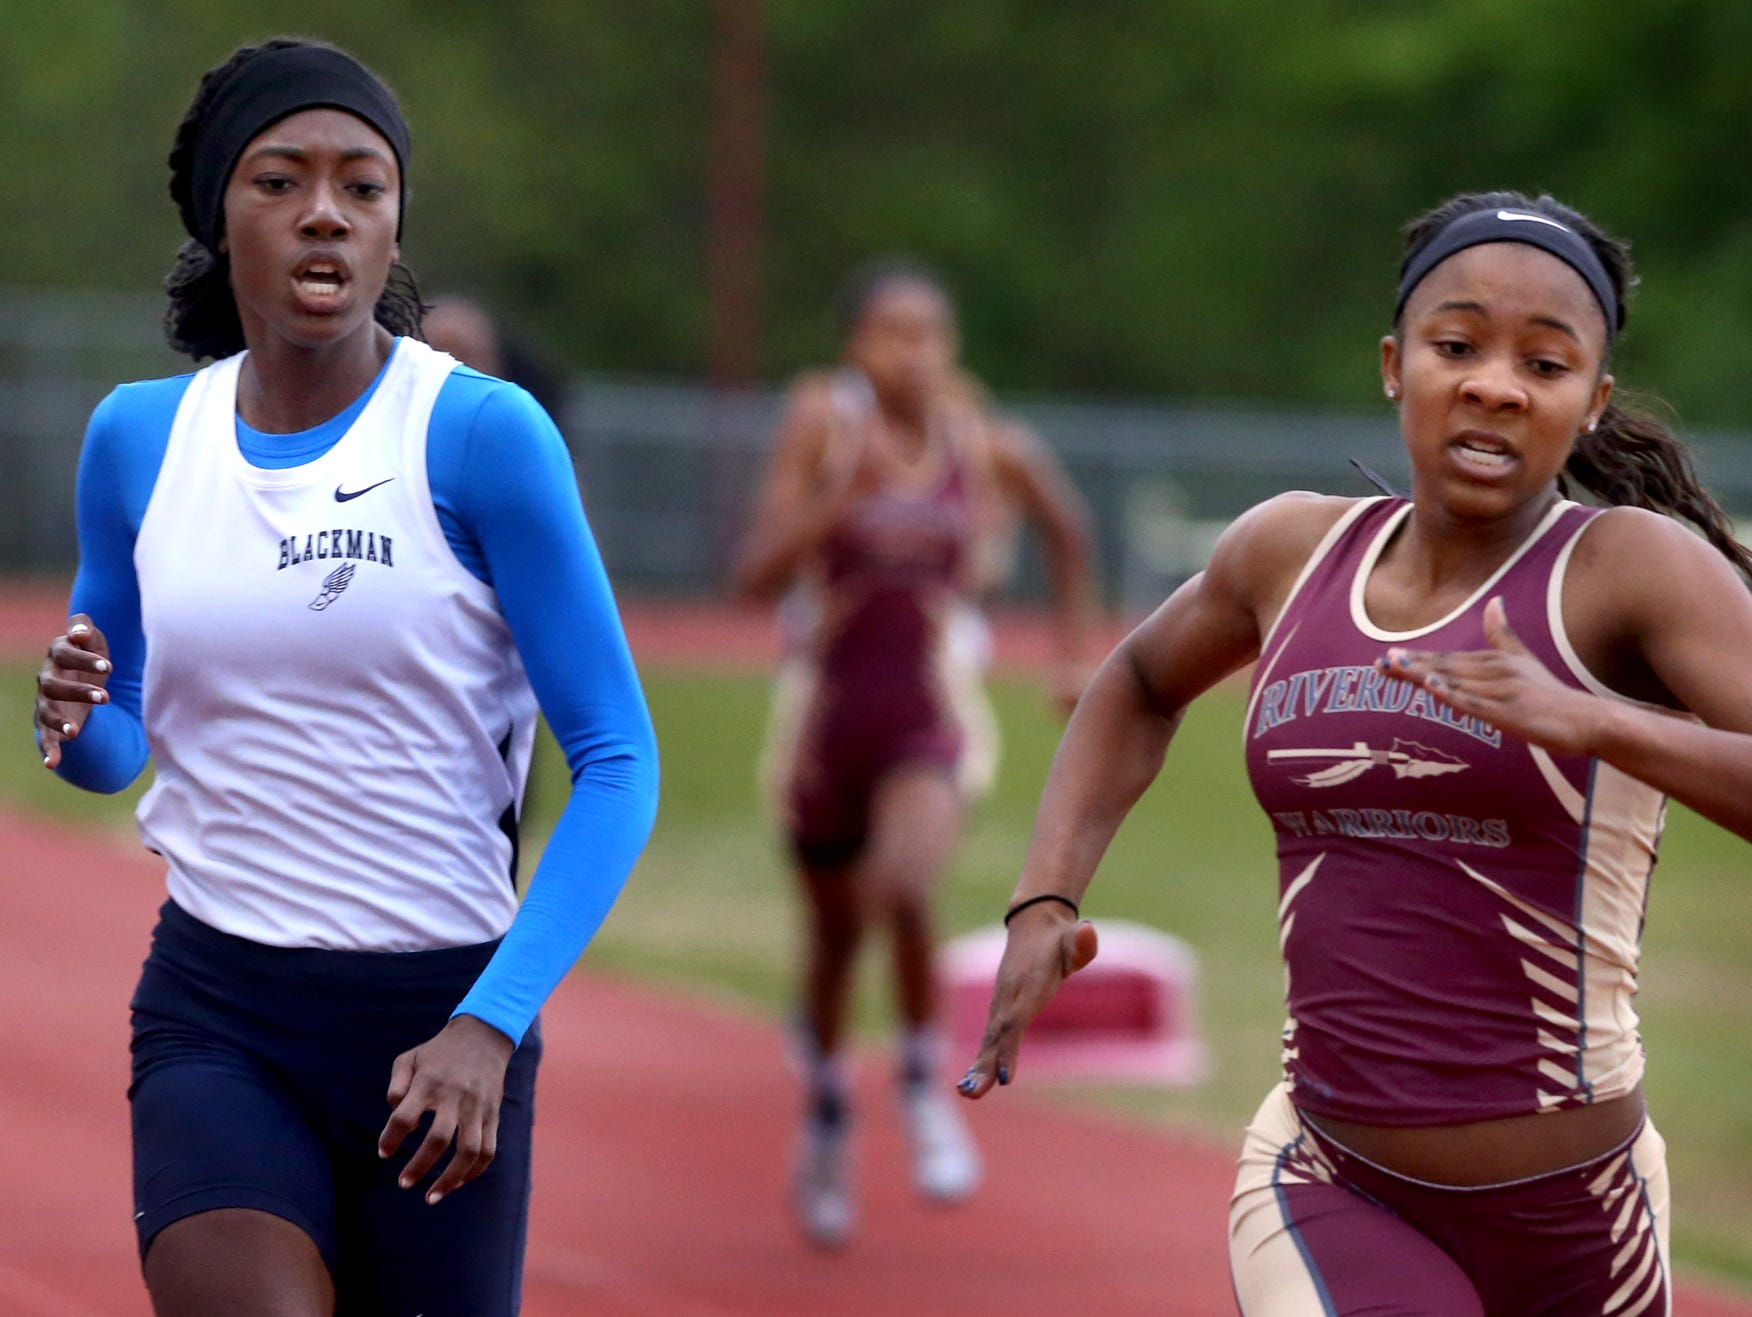 Riverdale's Anastasia Hayes, right stays ahead of Gabrielle Napper of Blackman to win the 400-meter Tuesday at Riverdale.